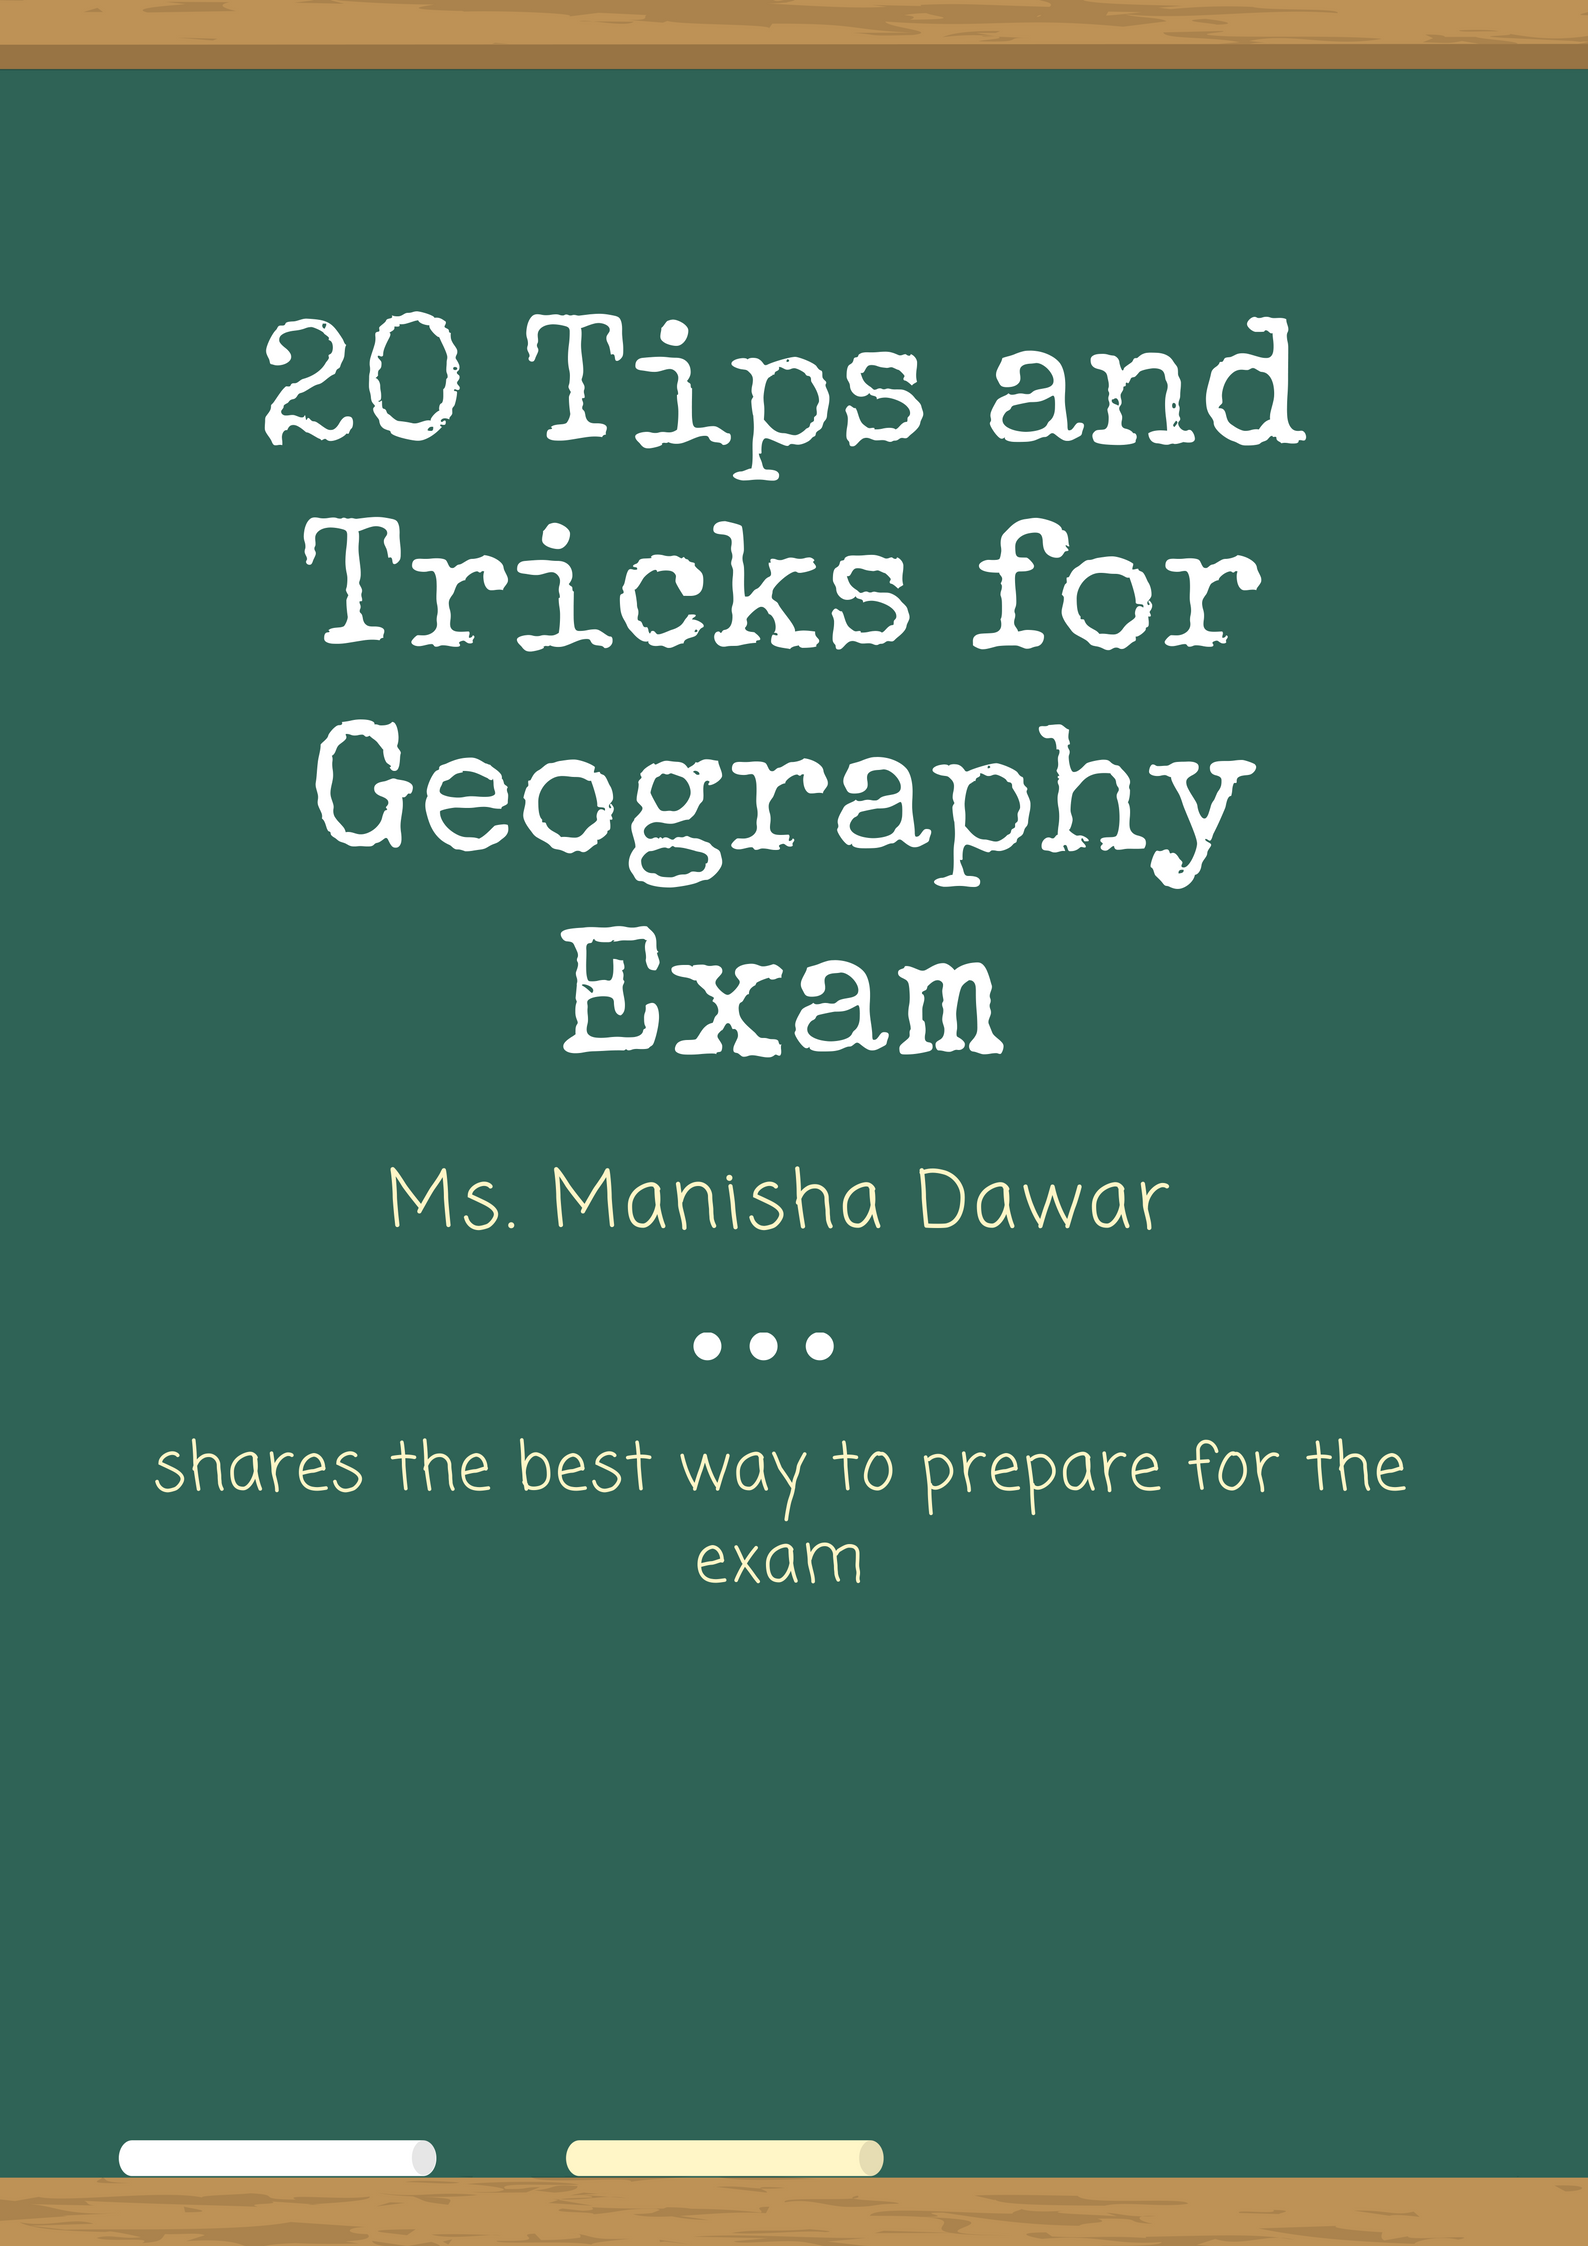 20 Tips and Tricks for Geography Exam